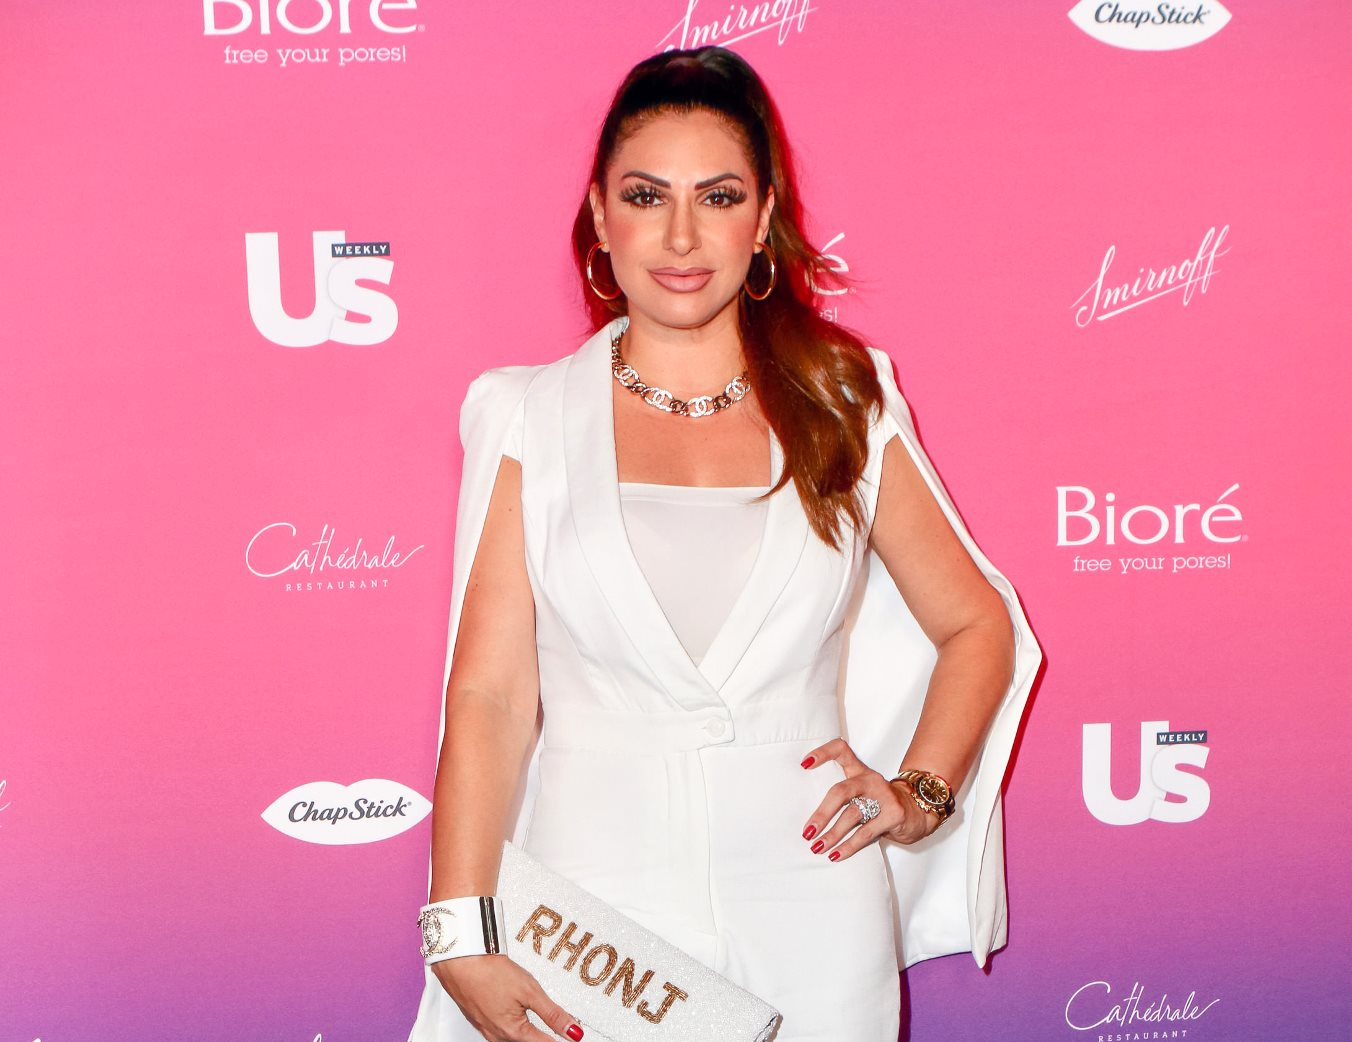 RHONJ Star Jennifer Aydin Confirms She's Tested Positive for the Coronavirus After 10 Days of Sickness, Plus She Reveals Her Symptoms